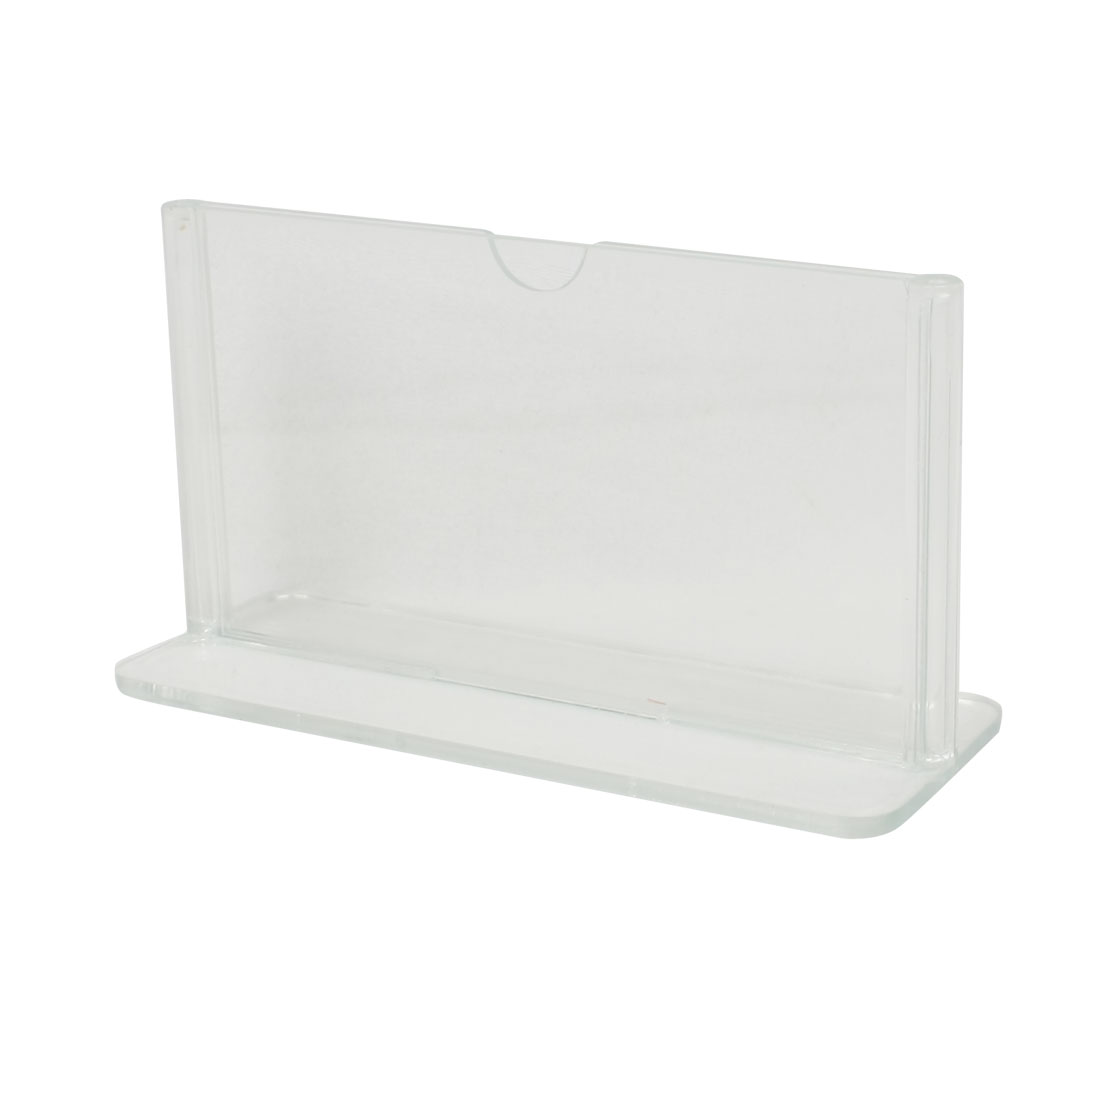 "4.7"" x 2.8"" Exhibition Paper Holder Display Stand"